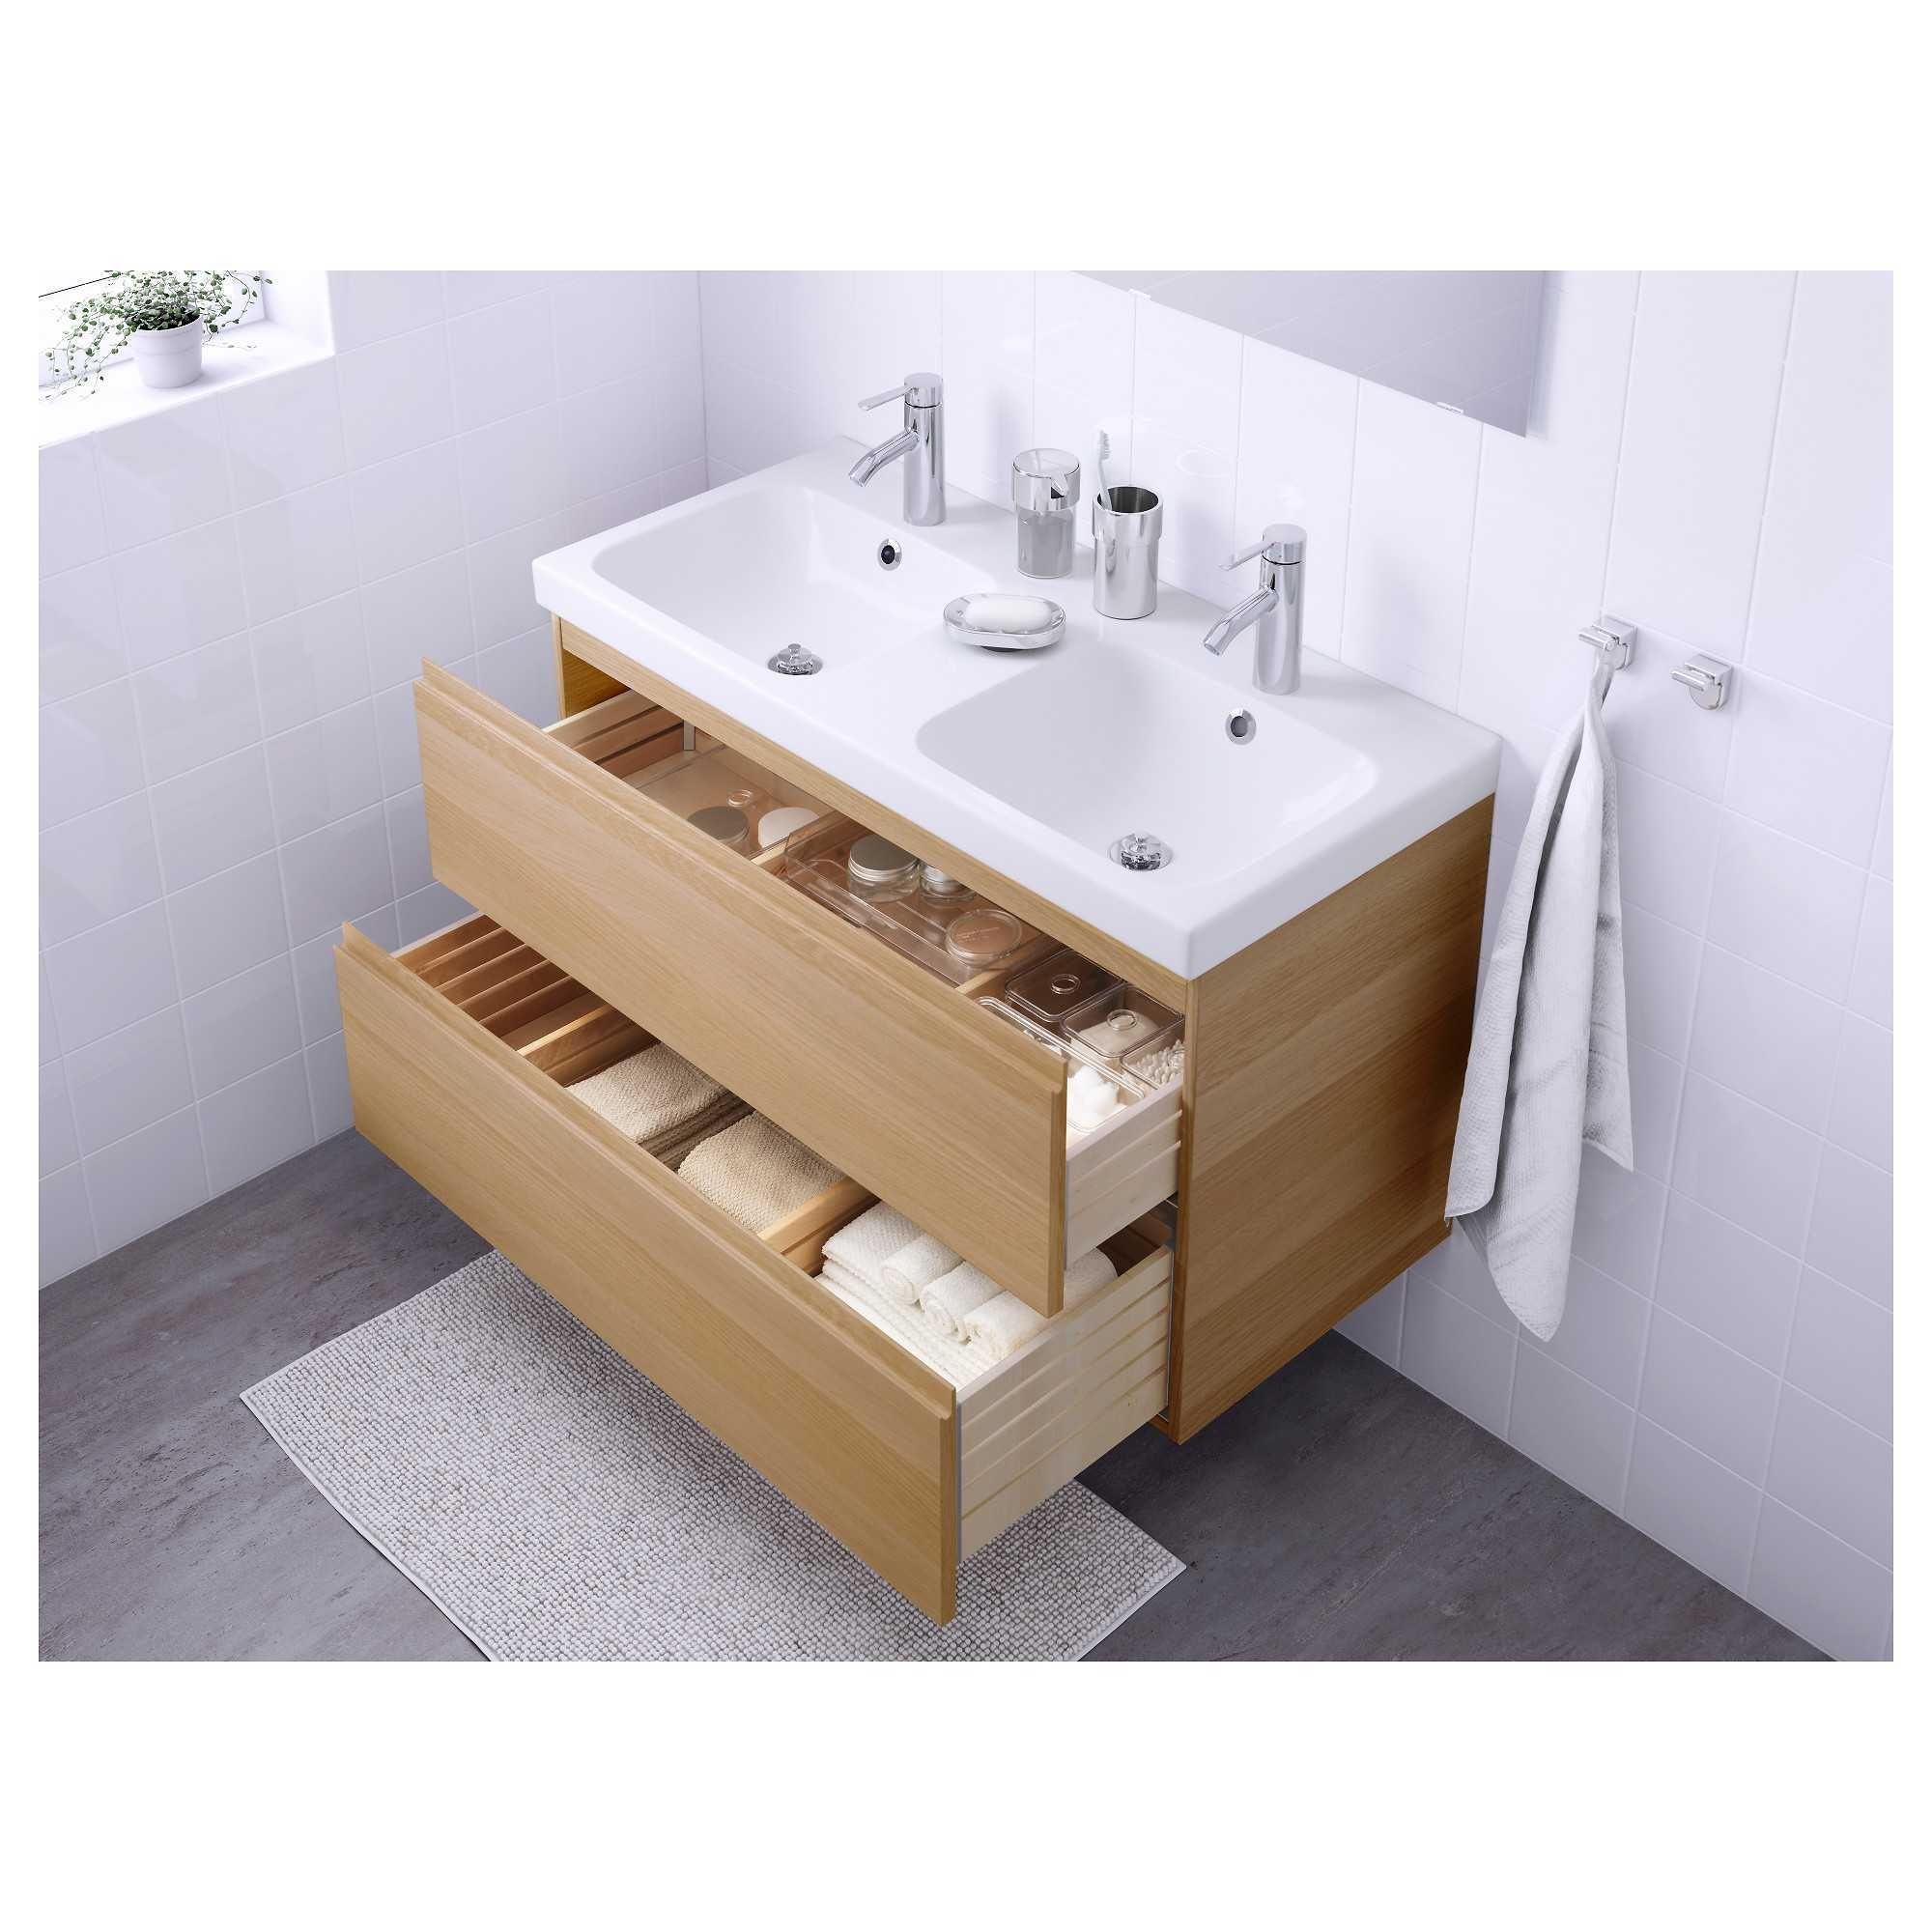 16 Nouveau Ikea Double Vasque Image Bathroom Vanity Ikea Godmorgon Diy Bathroom Storage